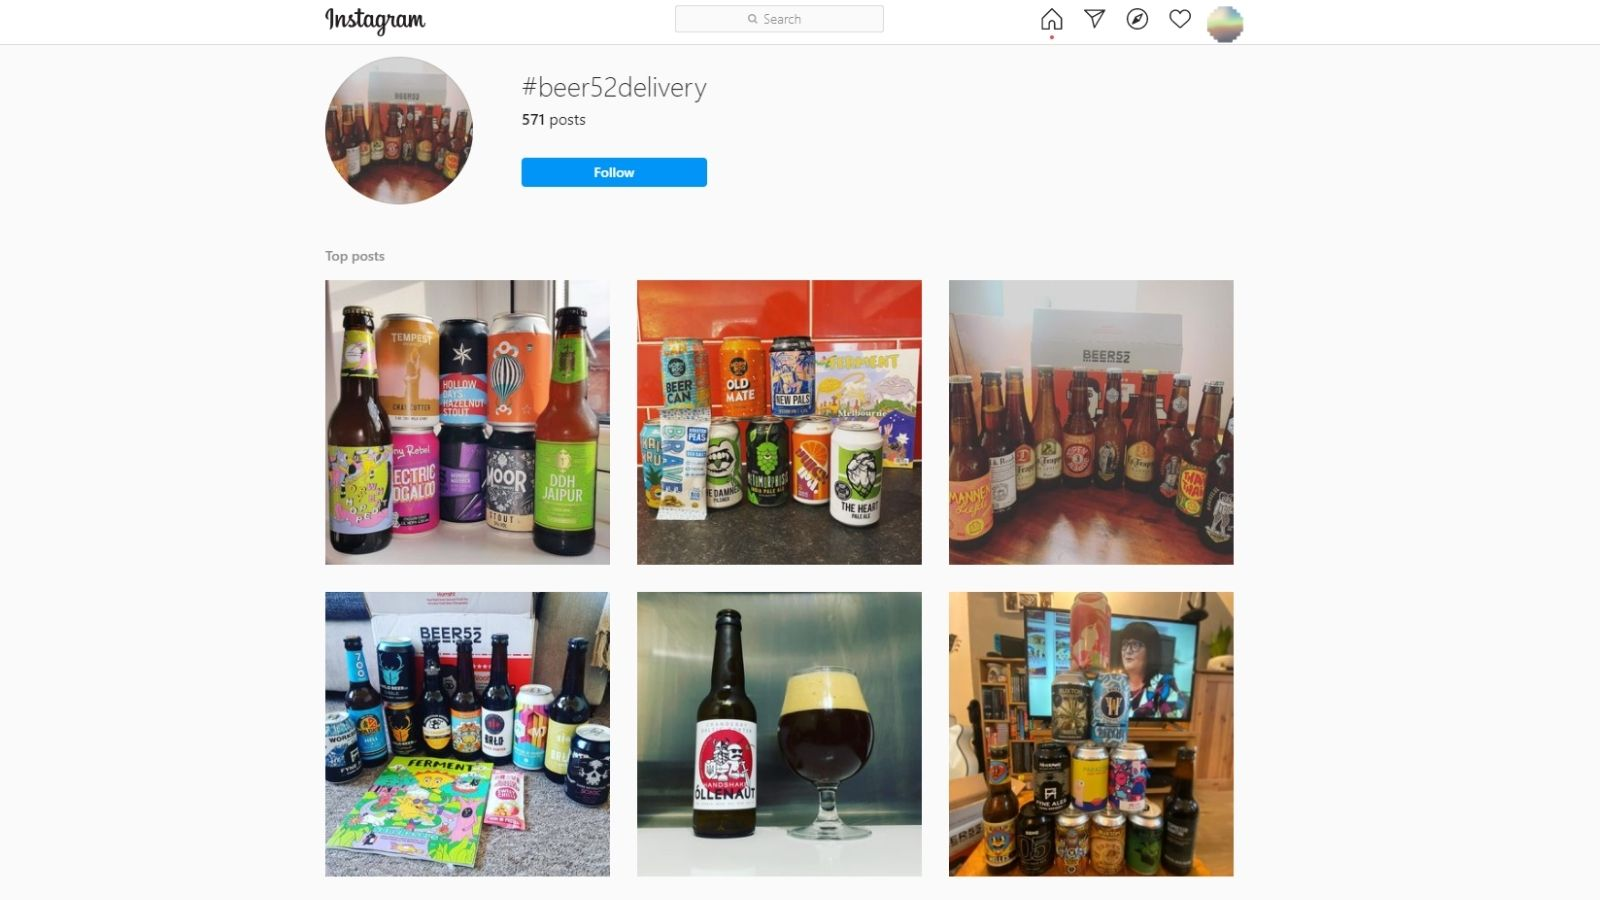 How Subscription Brands Can Reduce Post-Pandemic Customer Churn Beer52 Instagram Community